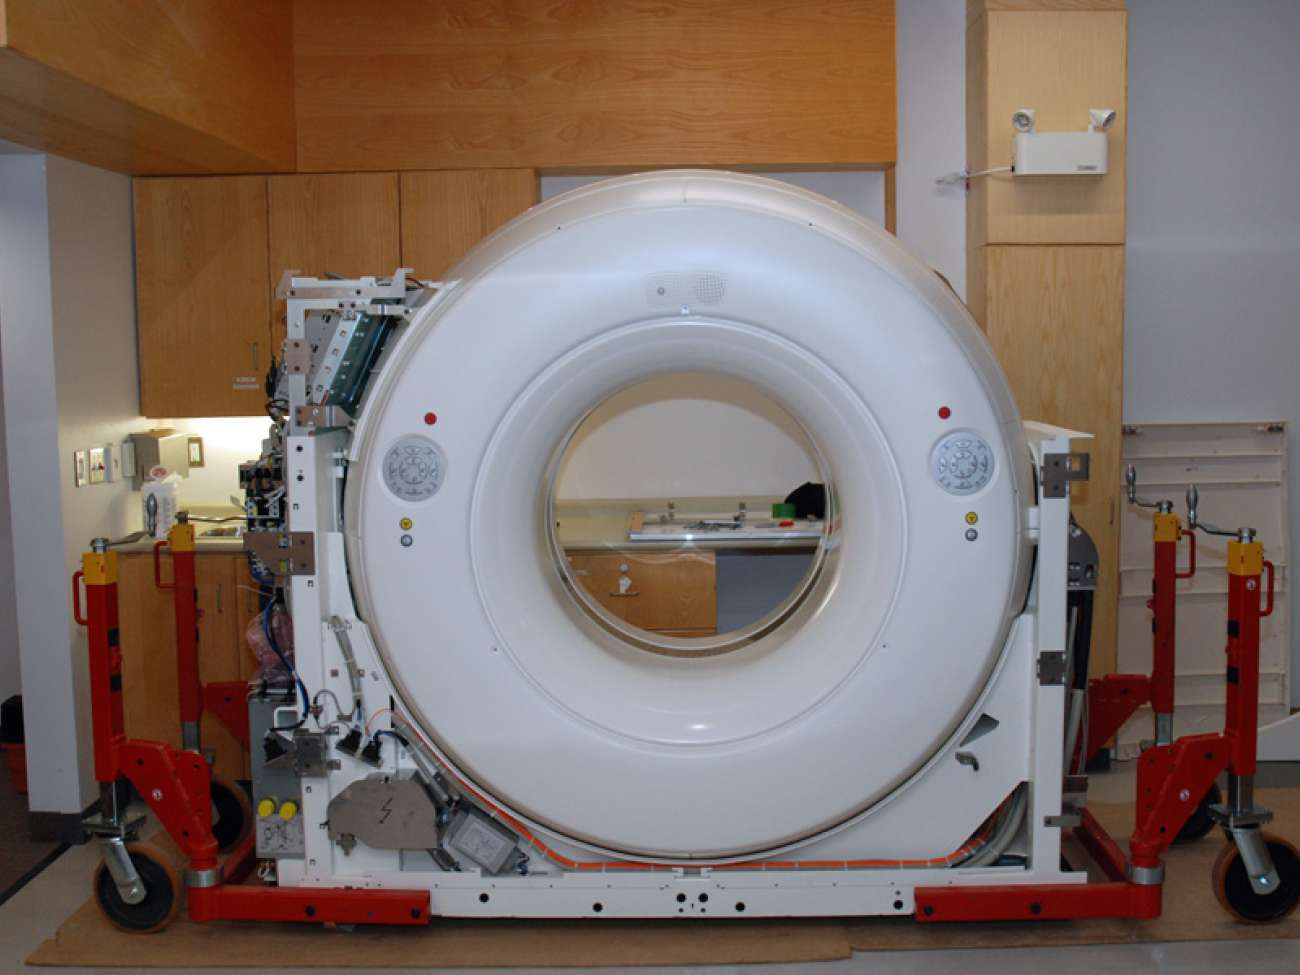 Part of the CT simulator in its new home.